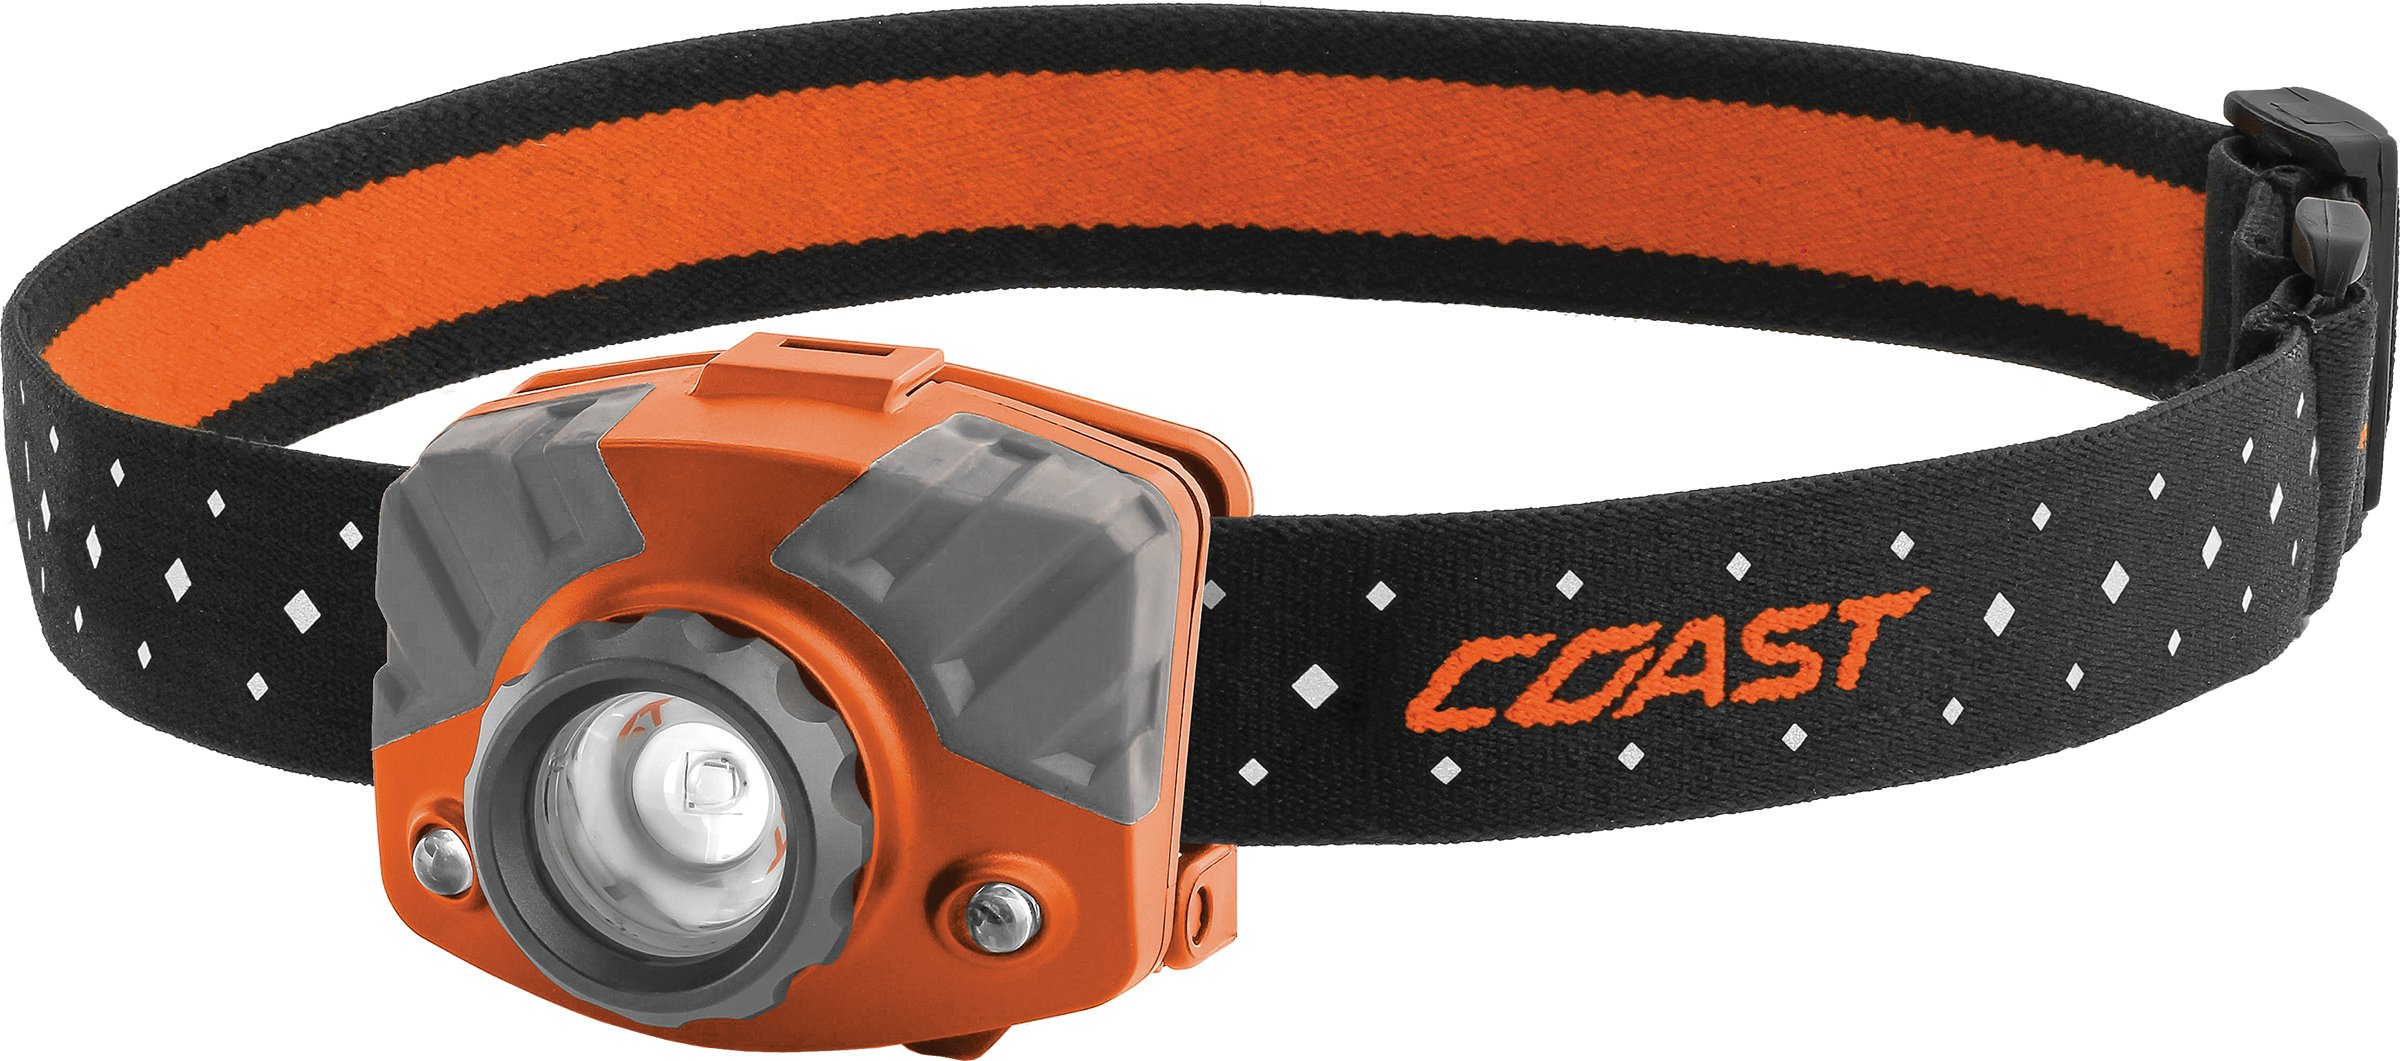 COAST FL75 435 Lumen Dual Color Focusing LED Headlamp with Twist Focus and Reflective Strap